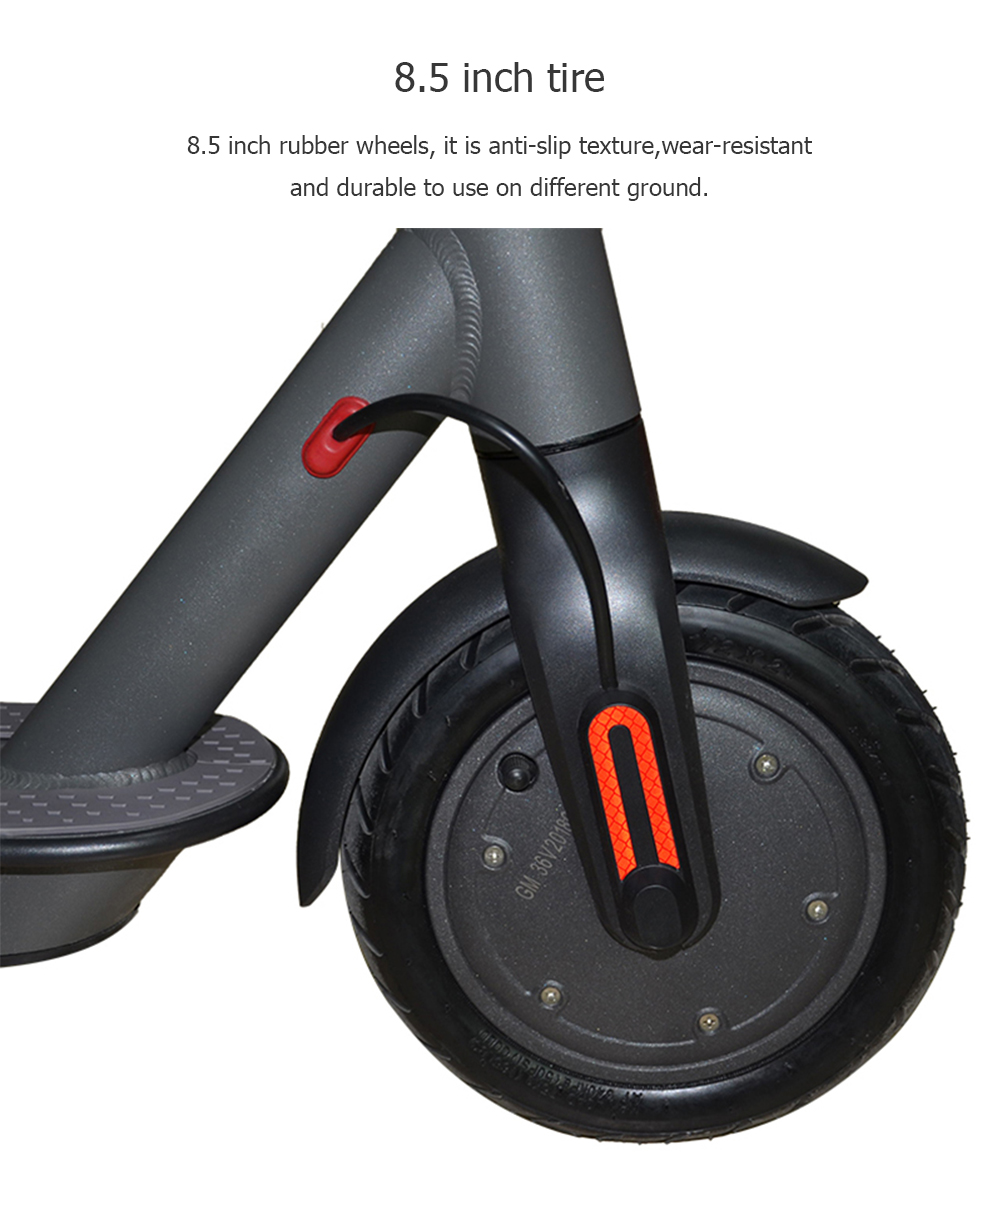 H - 8501 Two-wheel Electric Scooter with 7.5Ah Battery- Battleship Gray Regular